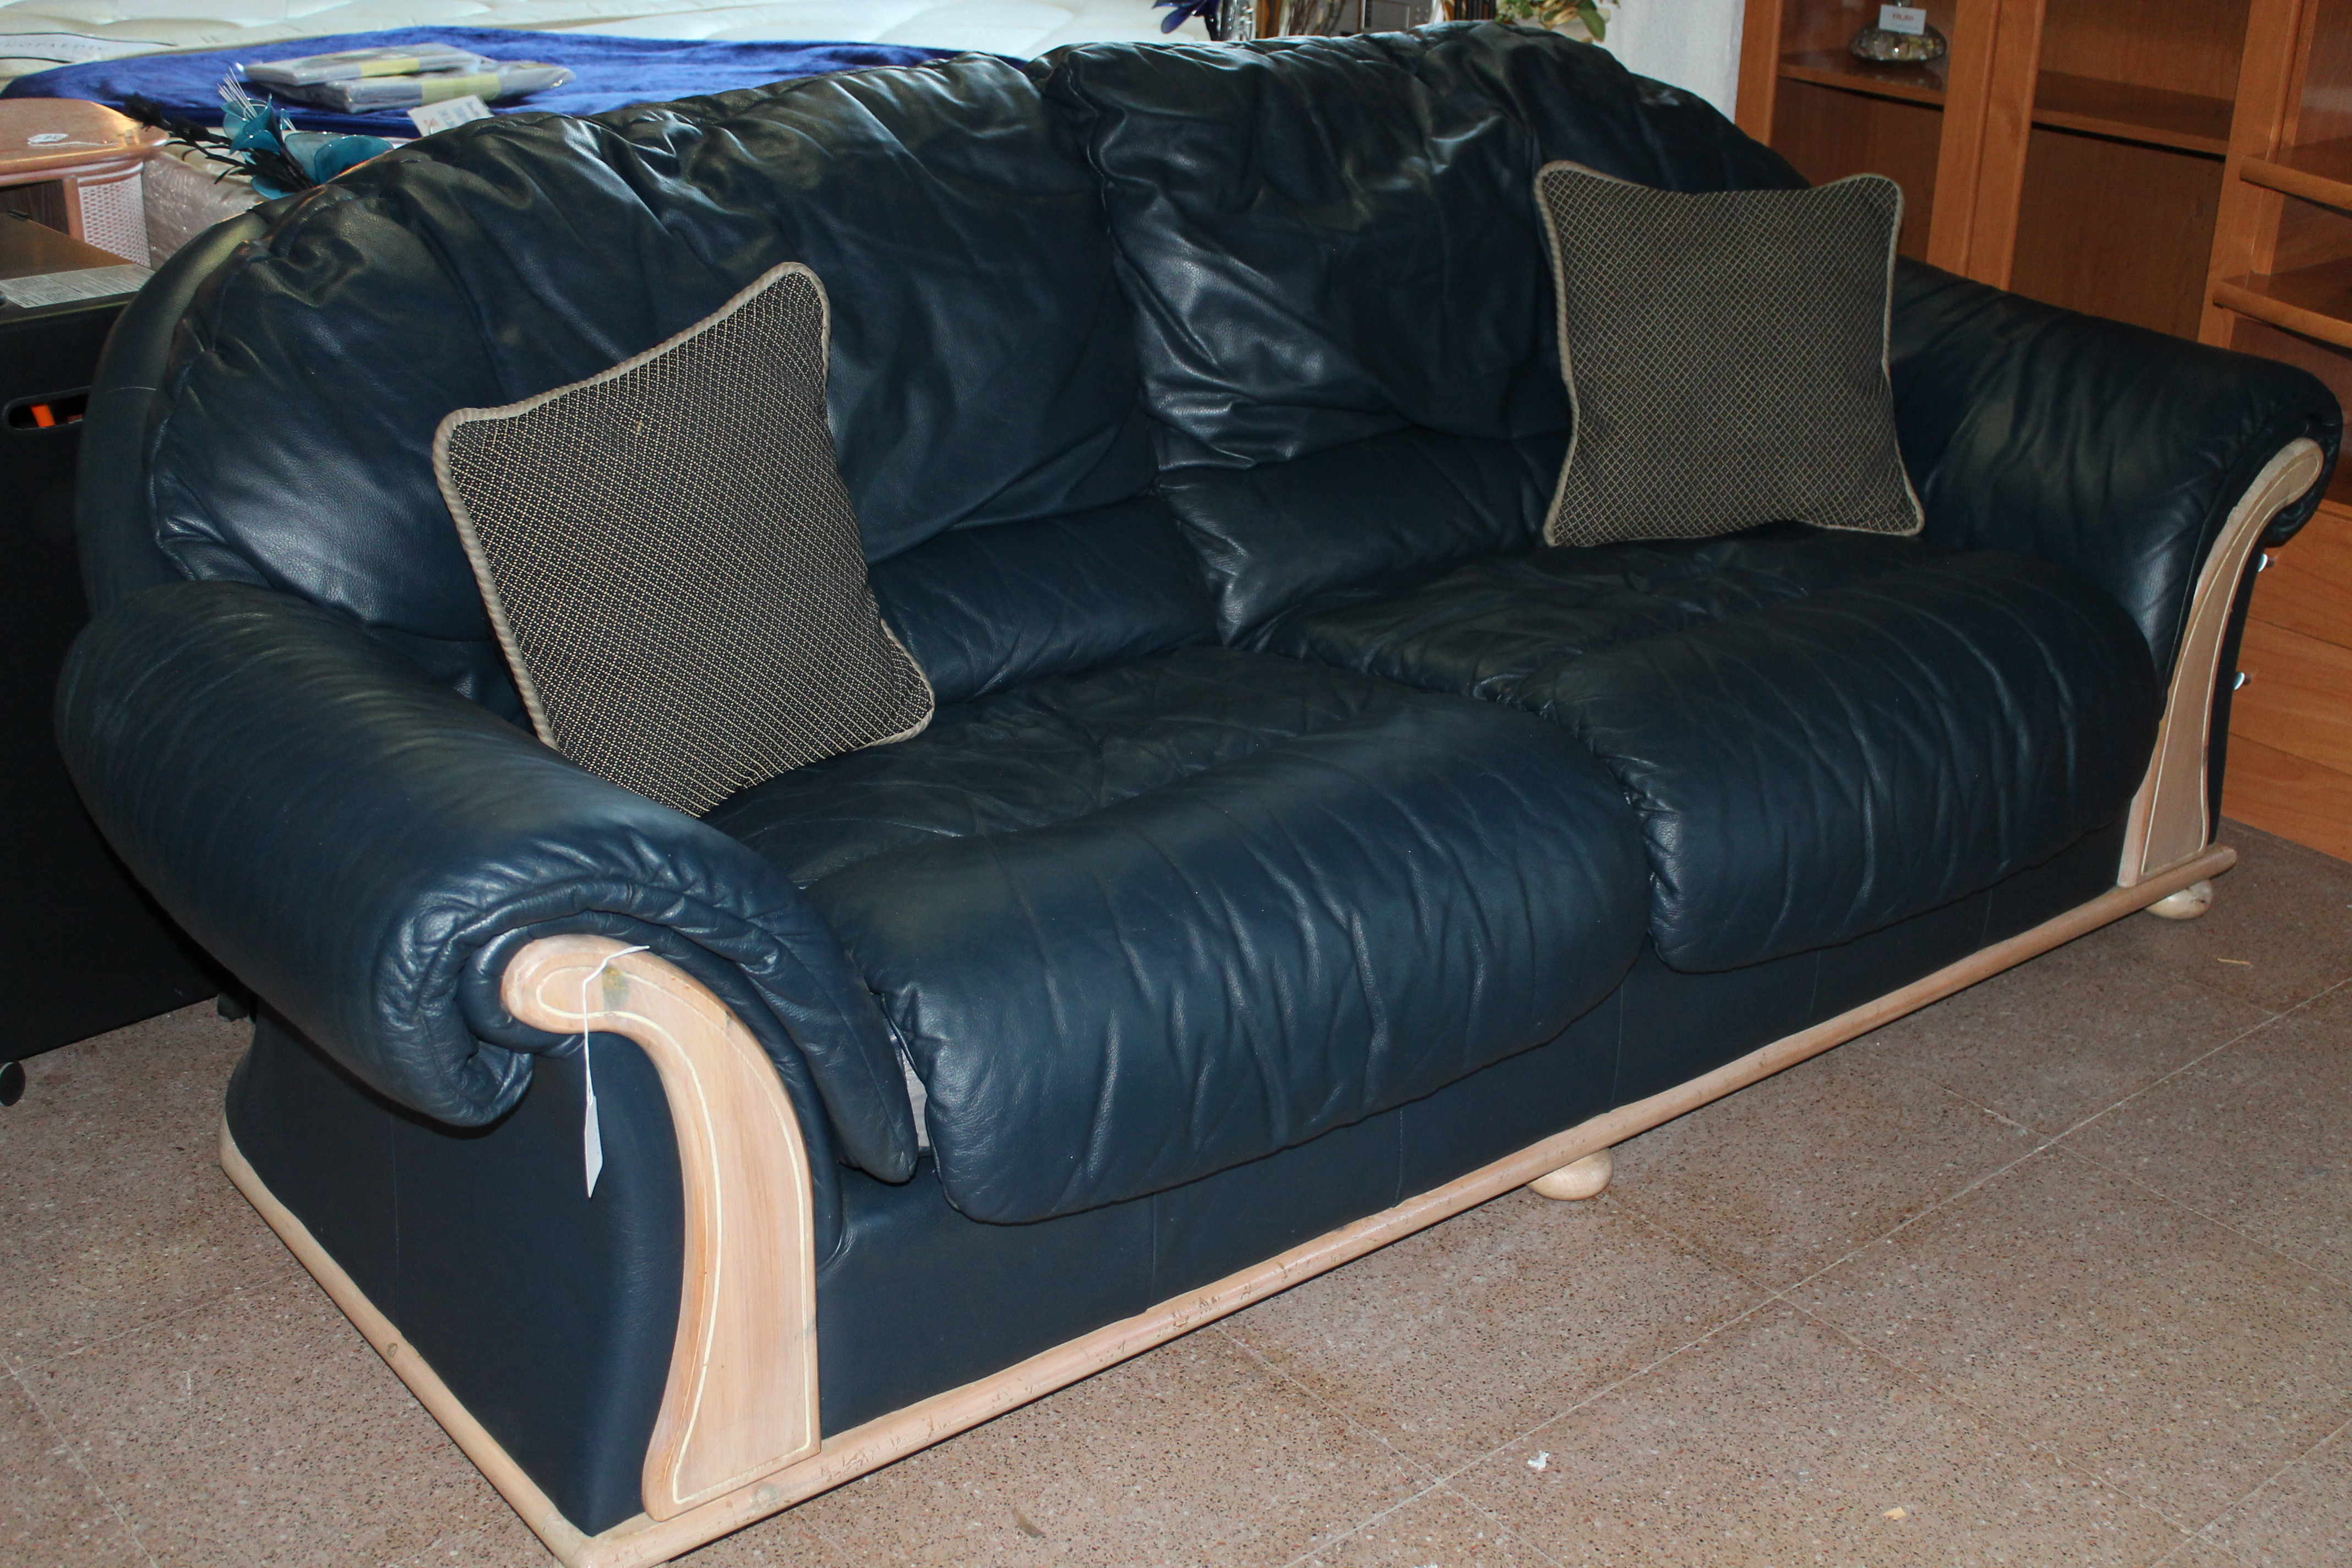 new2you furniture | second hand sofas/sofa beds for the living